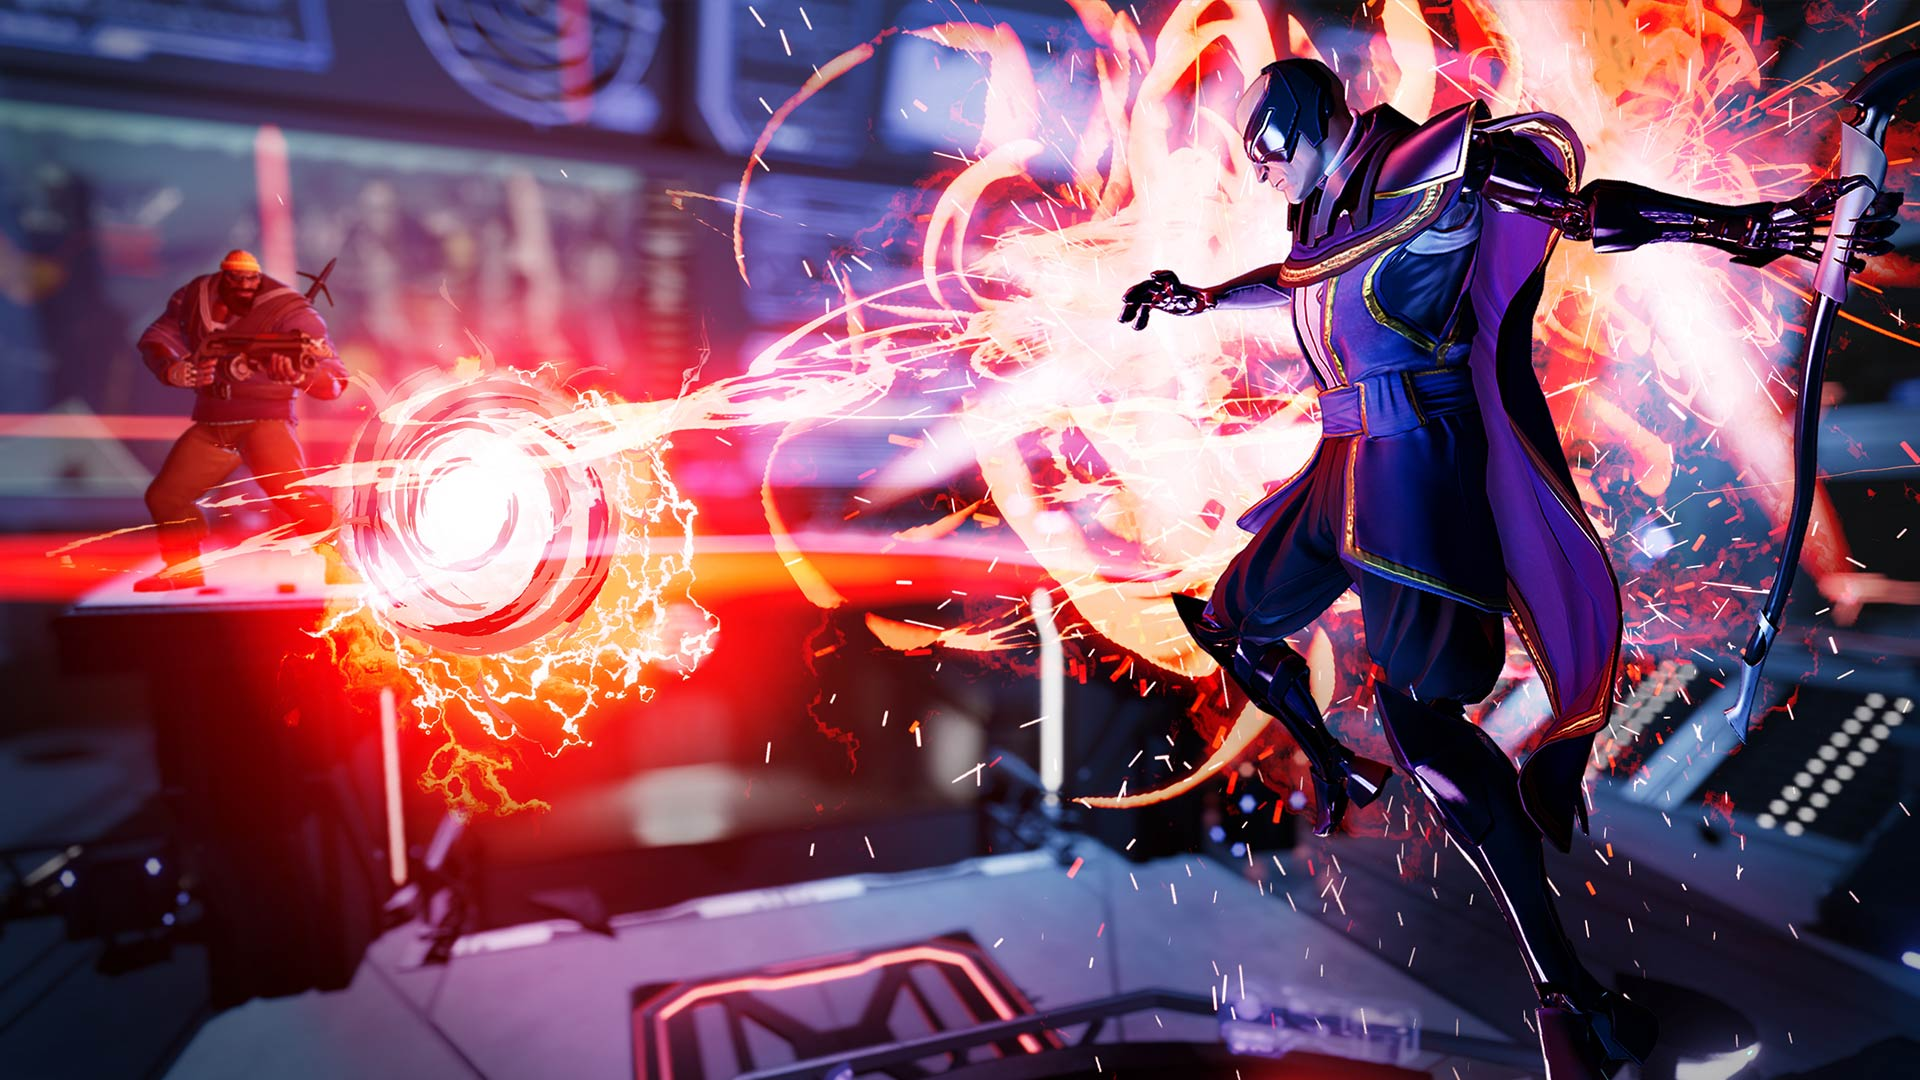 download agents of mayhem cracked by cpy include all dlc and latest update mirrorace multiup